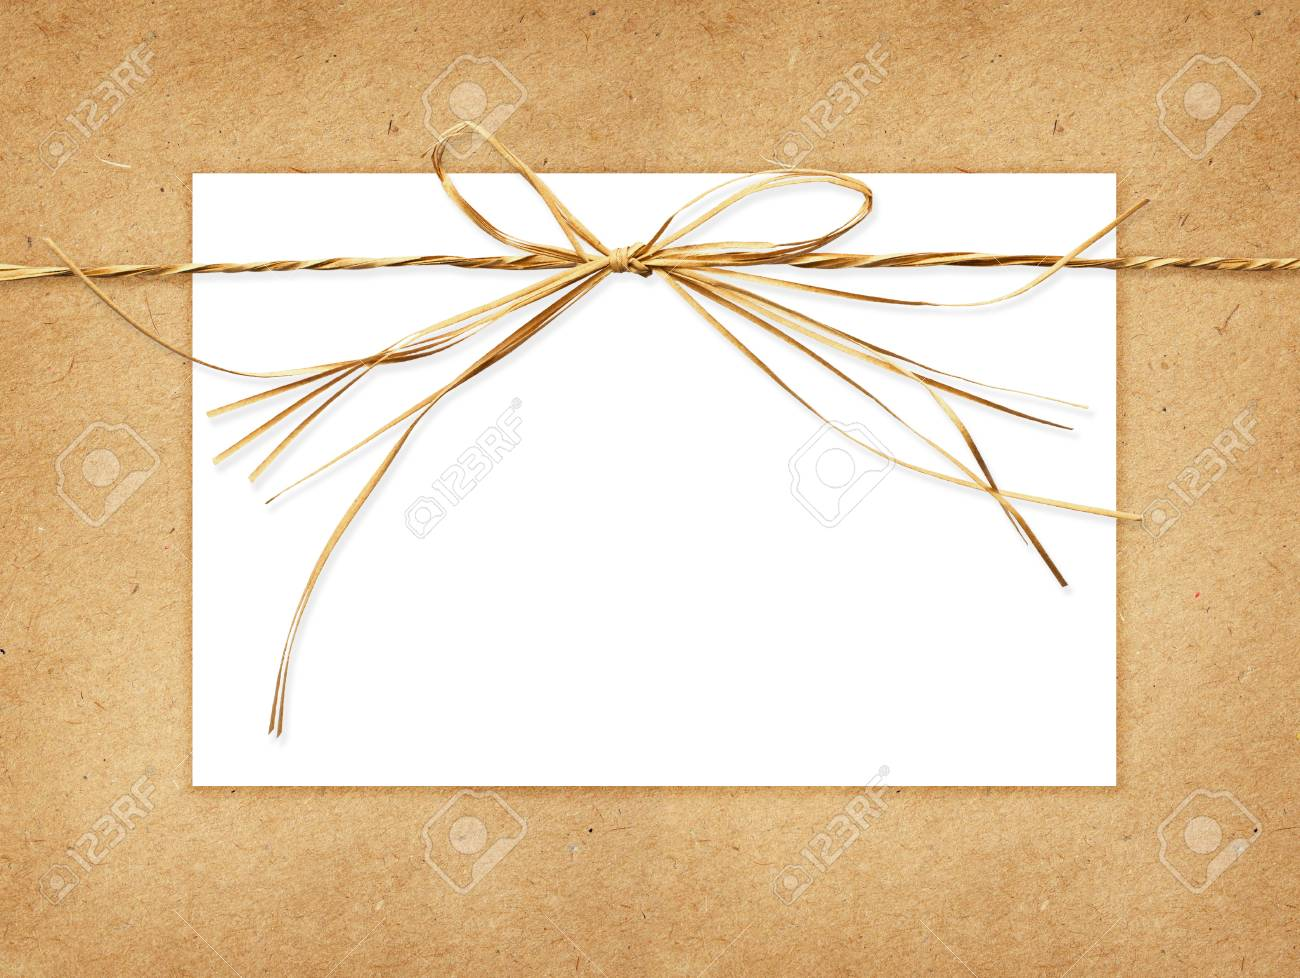 Beige Raffia Bow And A Card Tied On Craft Paper Background Stock 1300x978